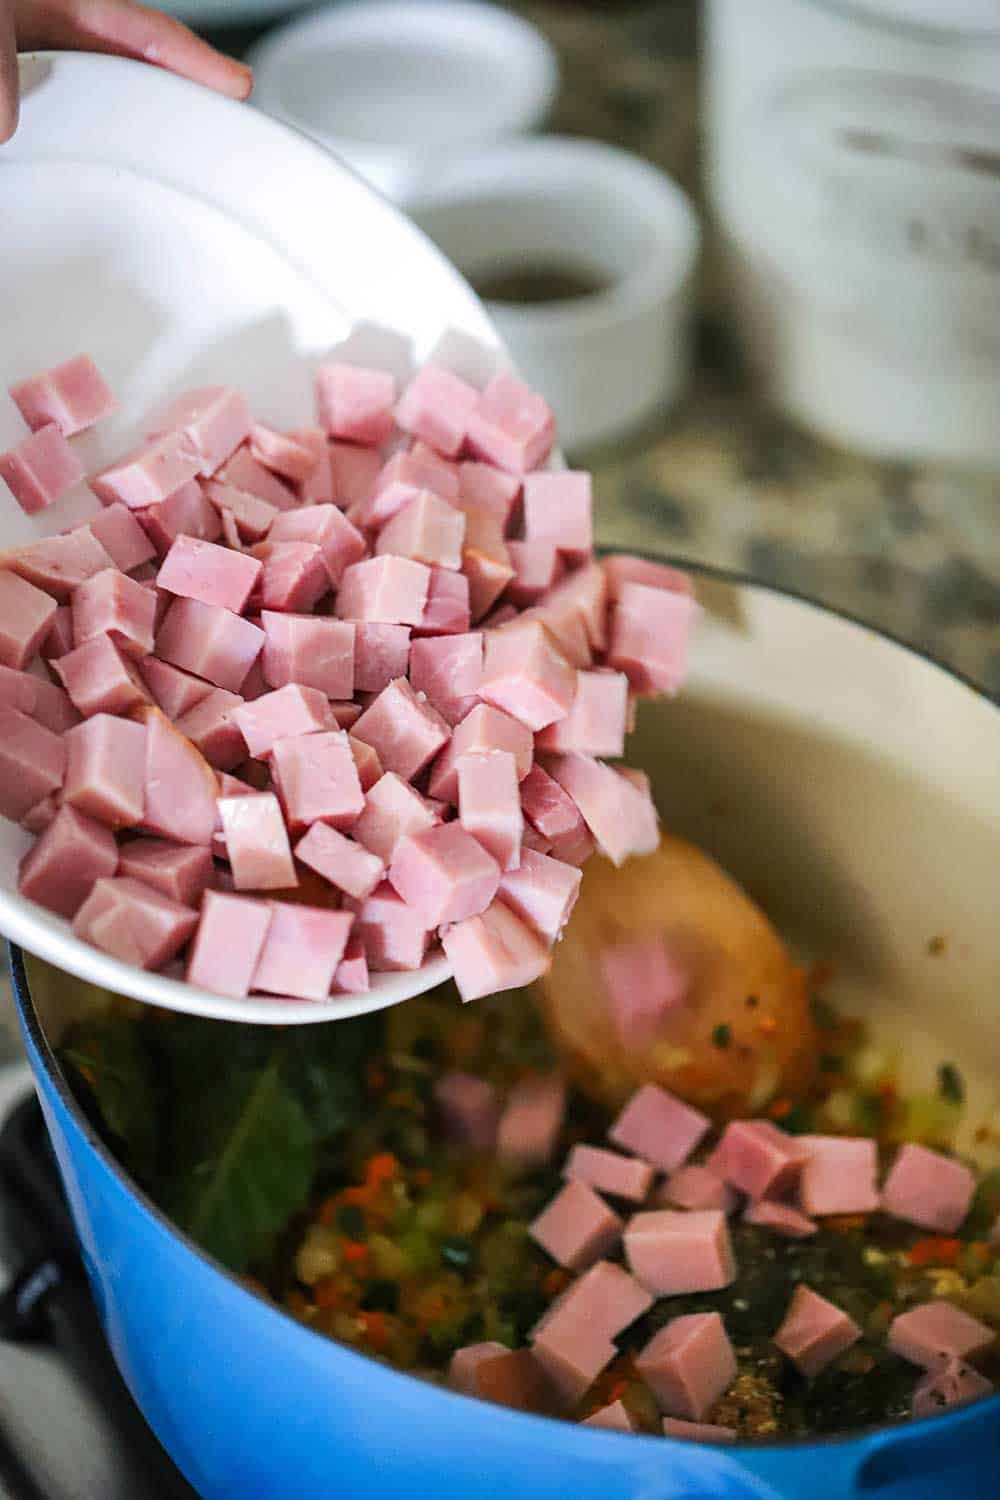 A bowl of cubed smoked ham being dropped into a Dutch oven filled with sautéed vegetables.